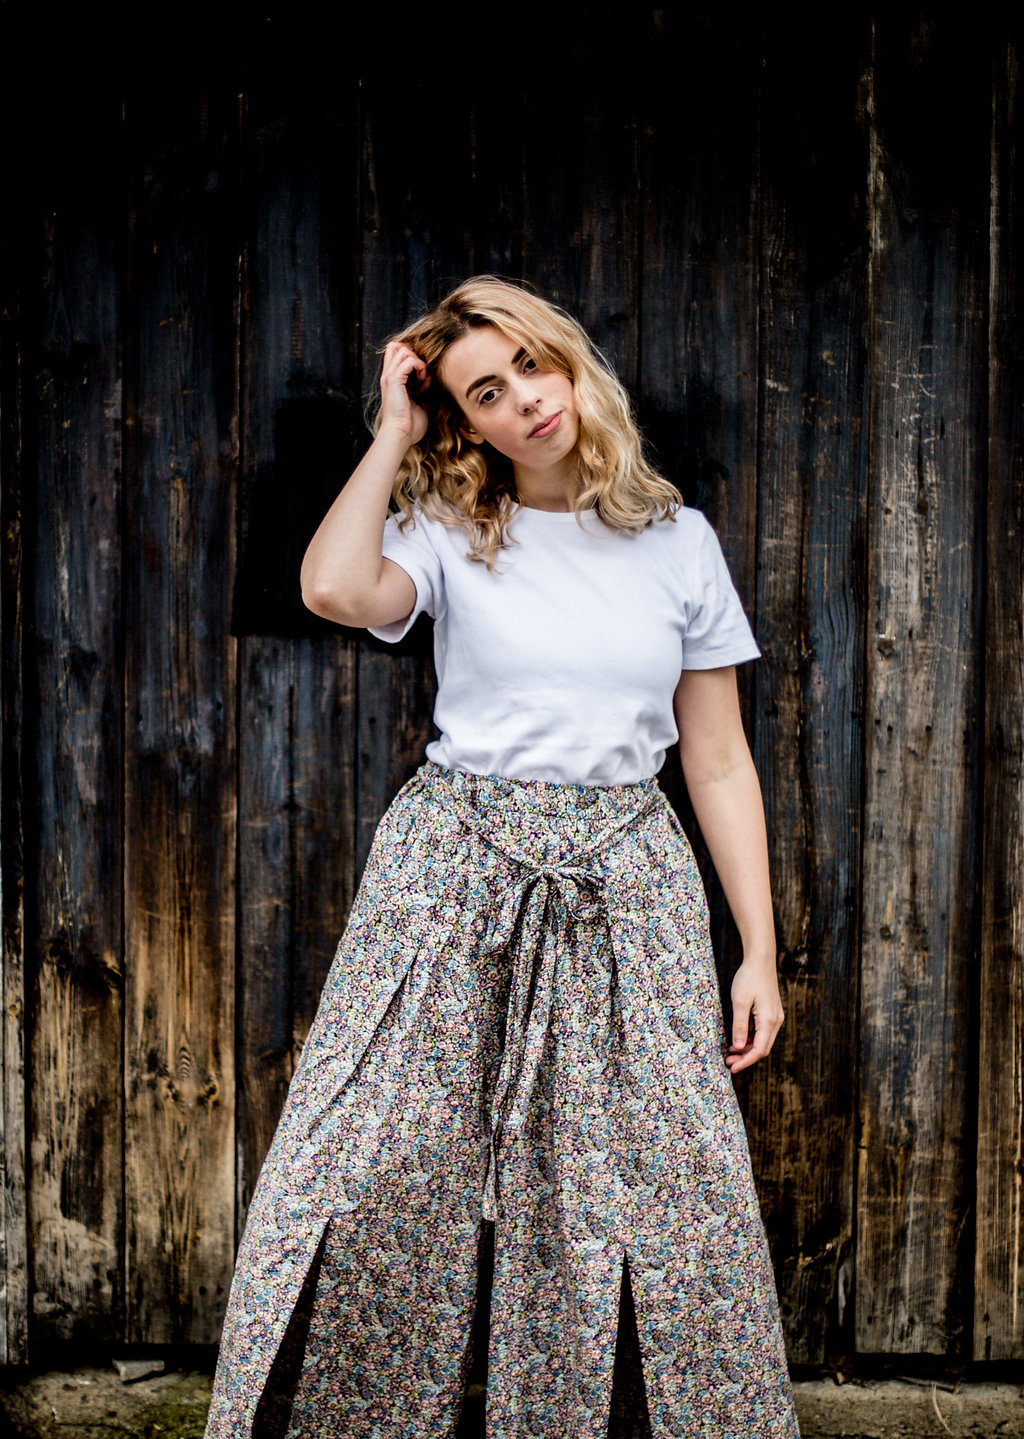 Oversize floral trousers // A Week Of Vibrant & Global Outfits With Francesca Willow From Ethical Unicorn on The Good Trade